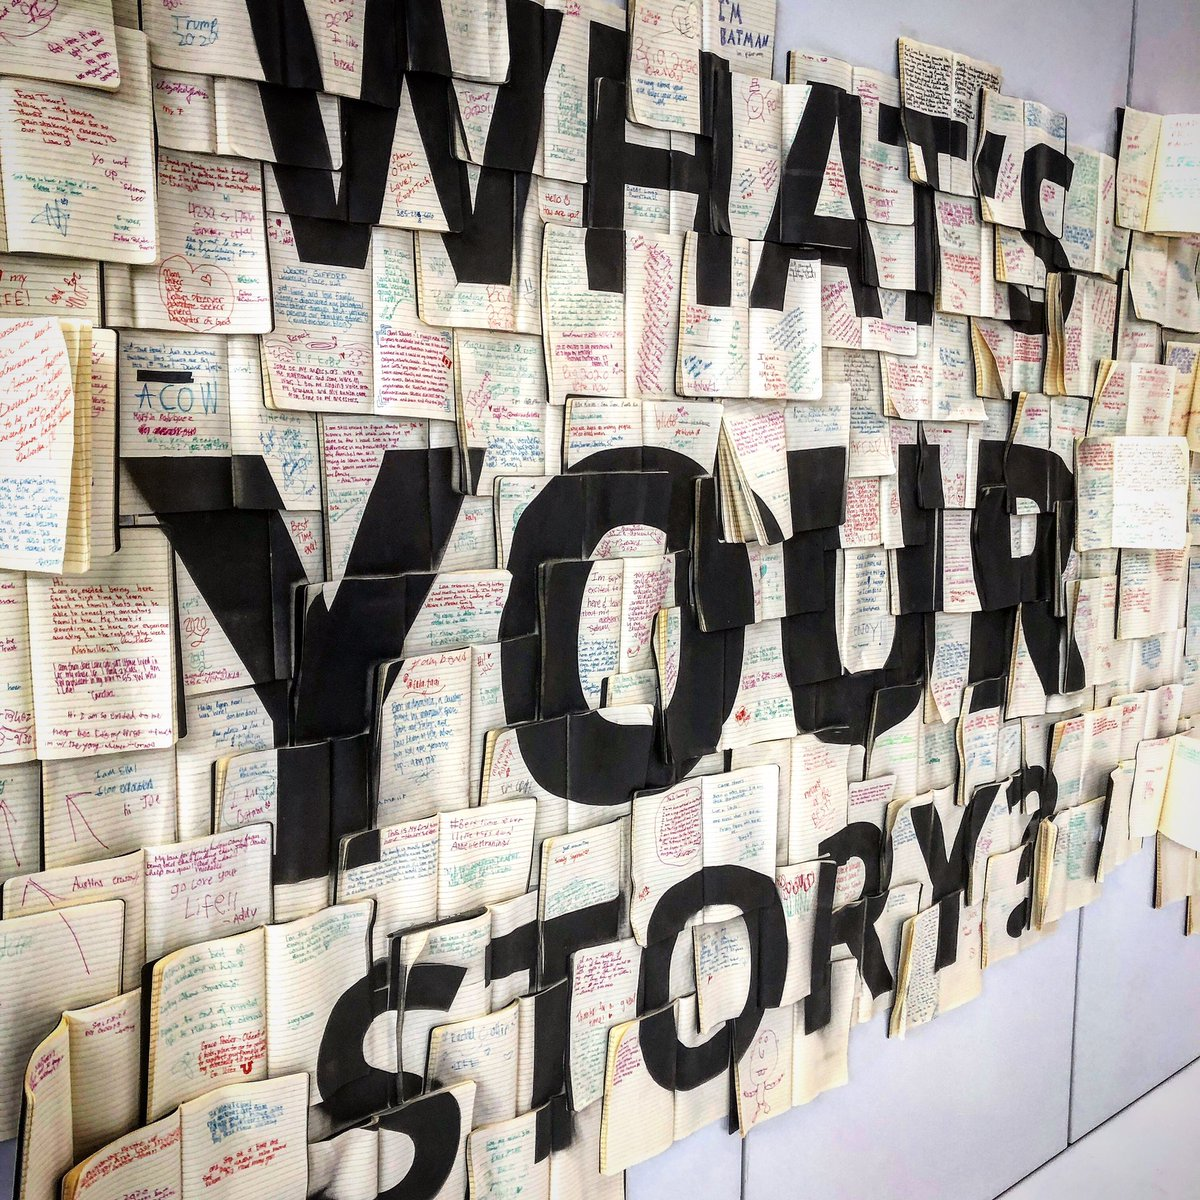 LOVE how full these pages are getting! Overall message is taking root - keep writing the Story of You! #RootsTech #rootstech2020 #rootstech10years #story #genealogy #you #storyofyou #whatsyourstory #WritingCommunity #amwriting #writing https://t.co/4B9bF4SP0a